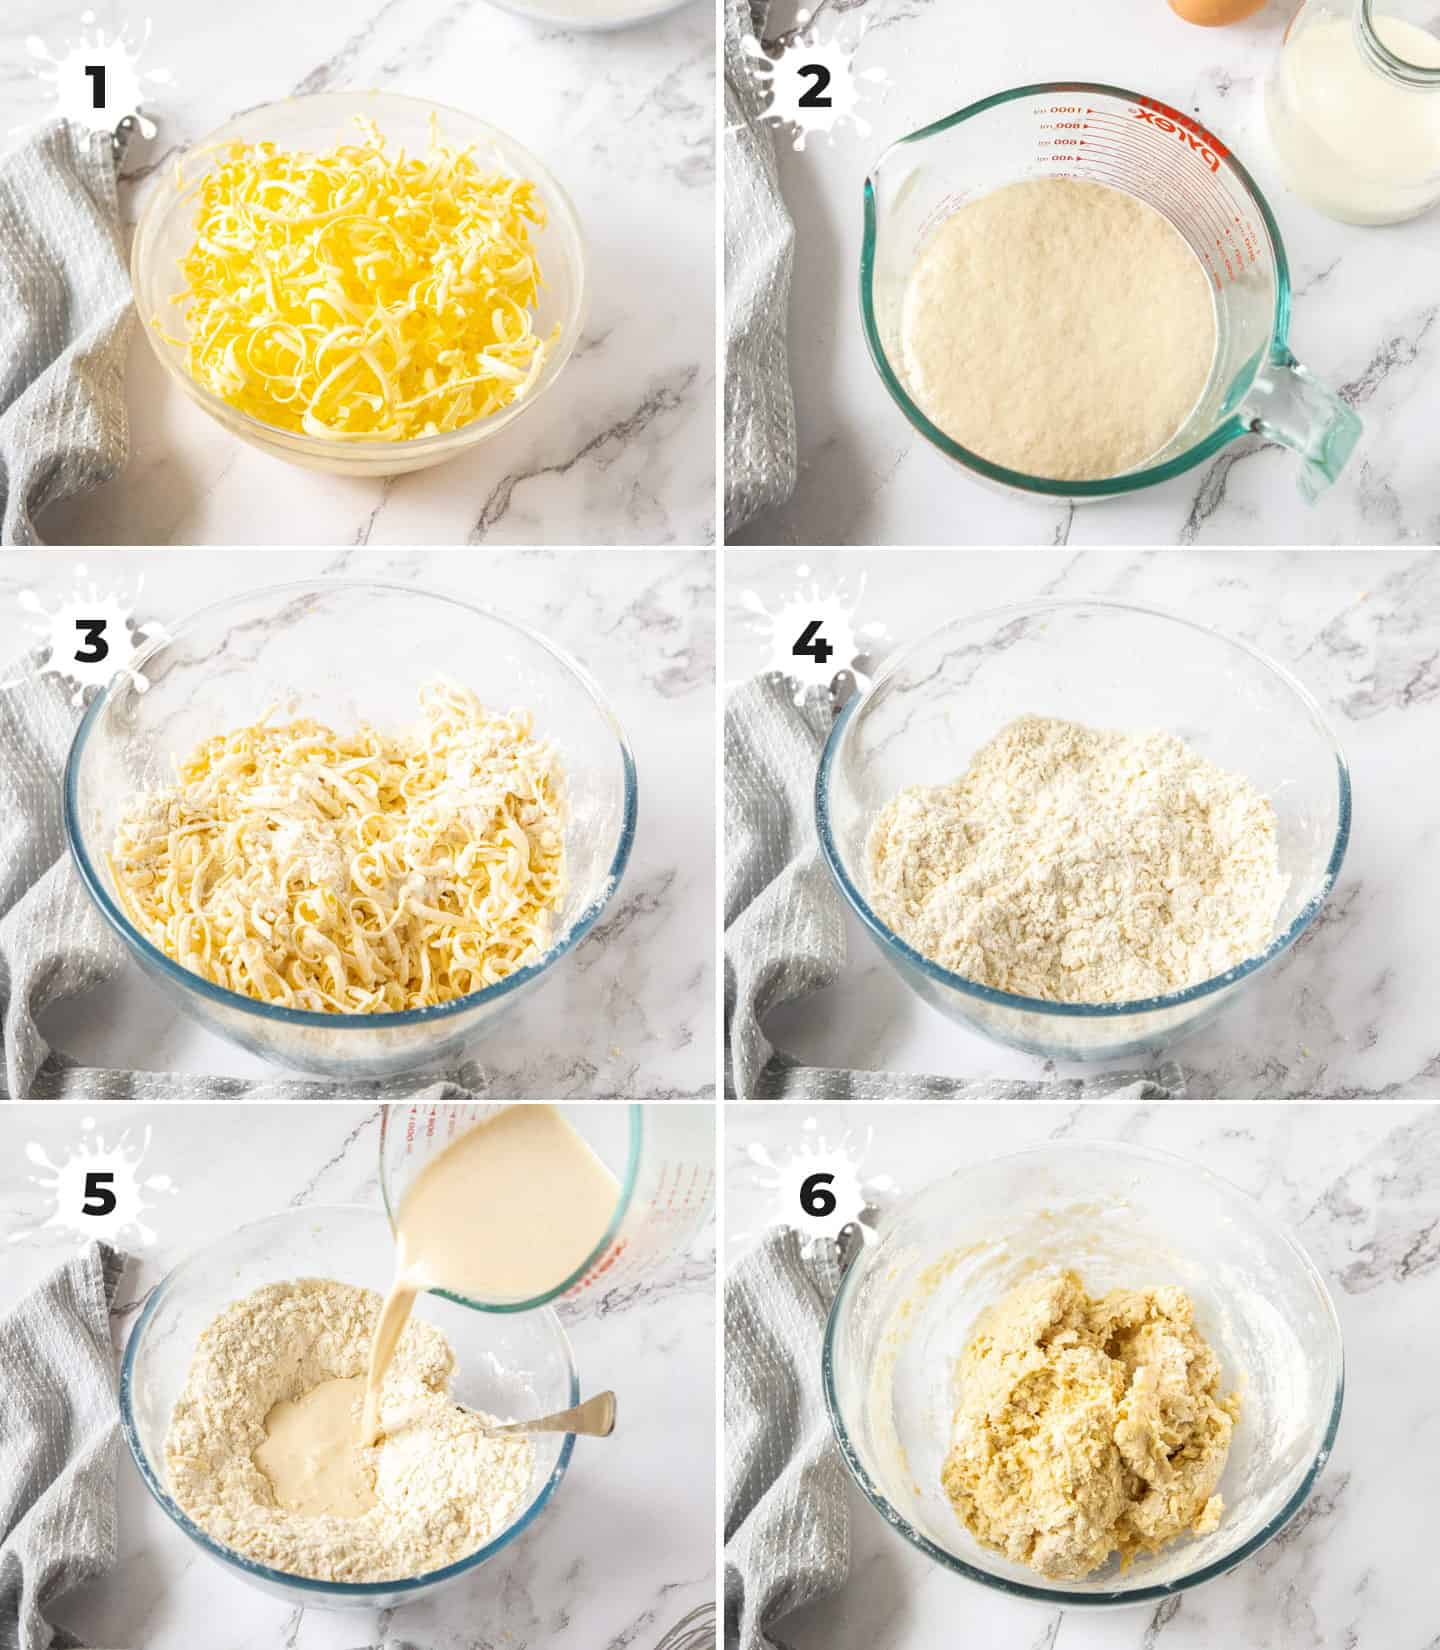 A collage of 6 images showing how to make the dough.